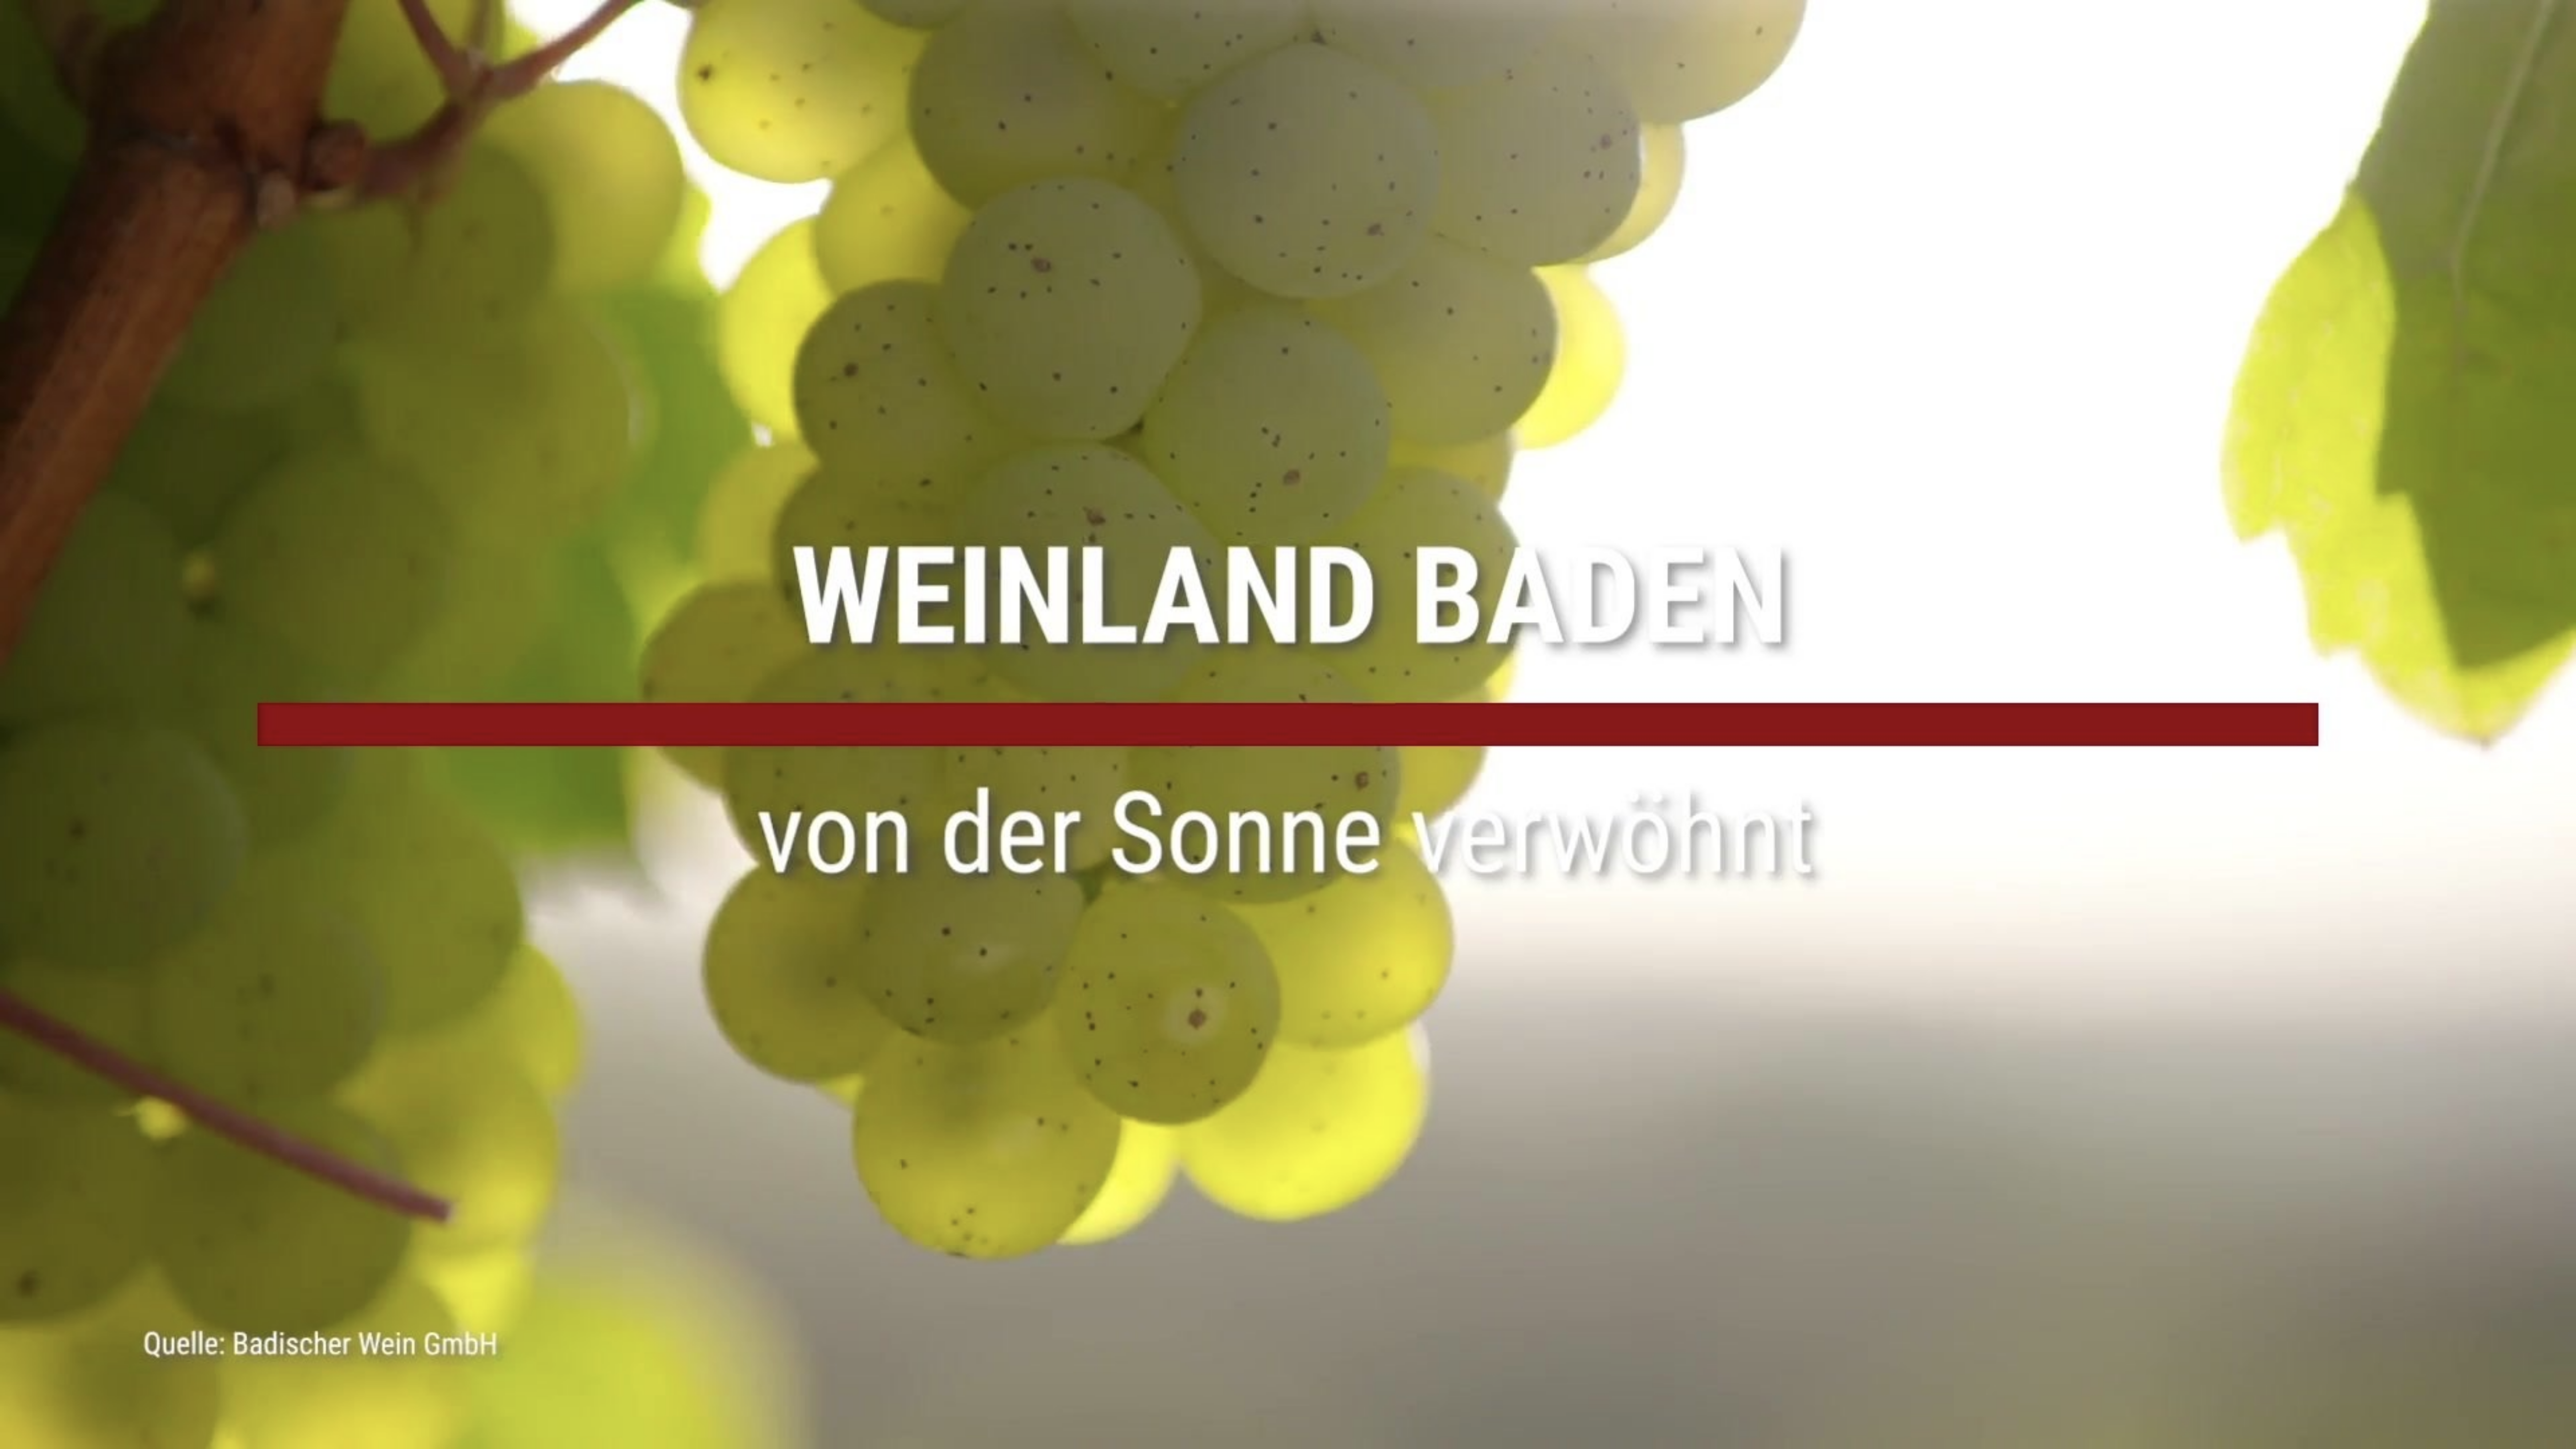 The Baden wine country – spoiled by the sun